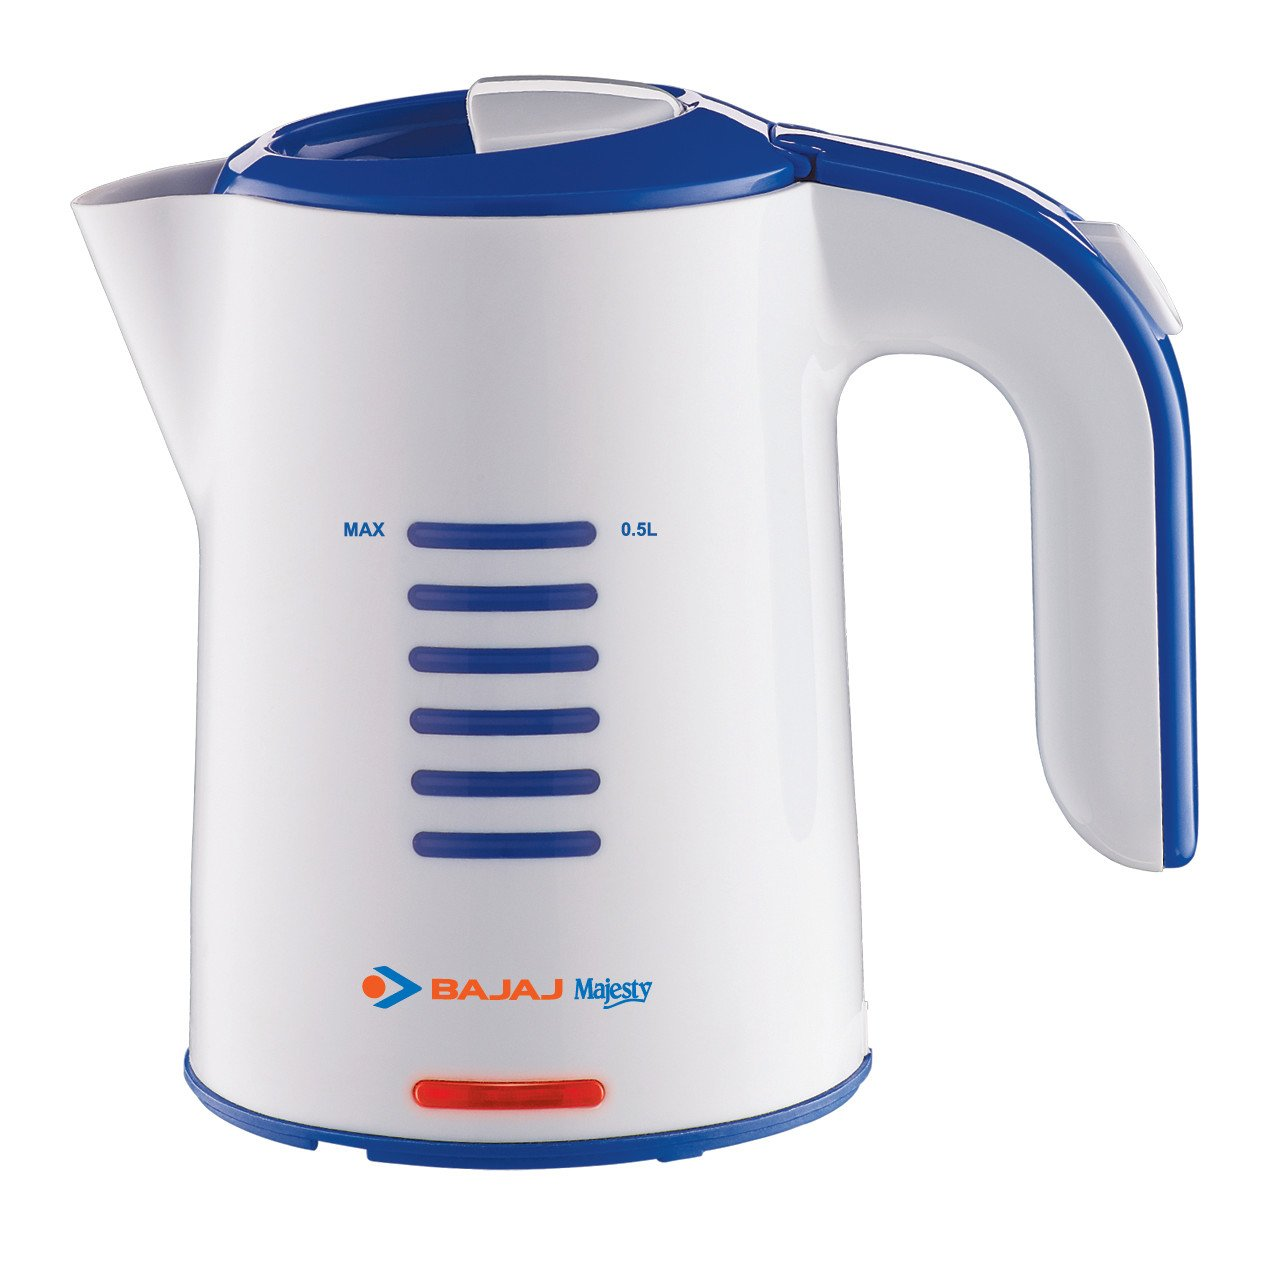 Bajaj Majesty KTX 1 0.5-Litre Travel Electric Kettle at Rs 640 from Amazon.in